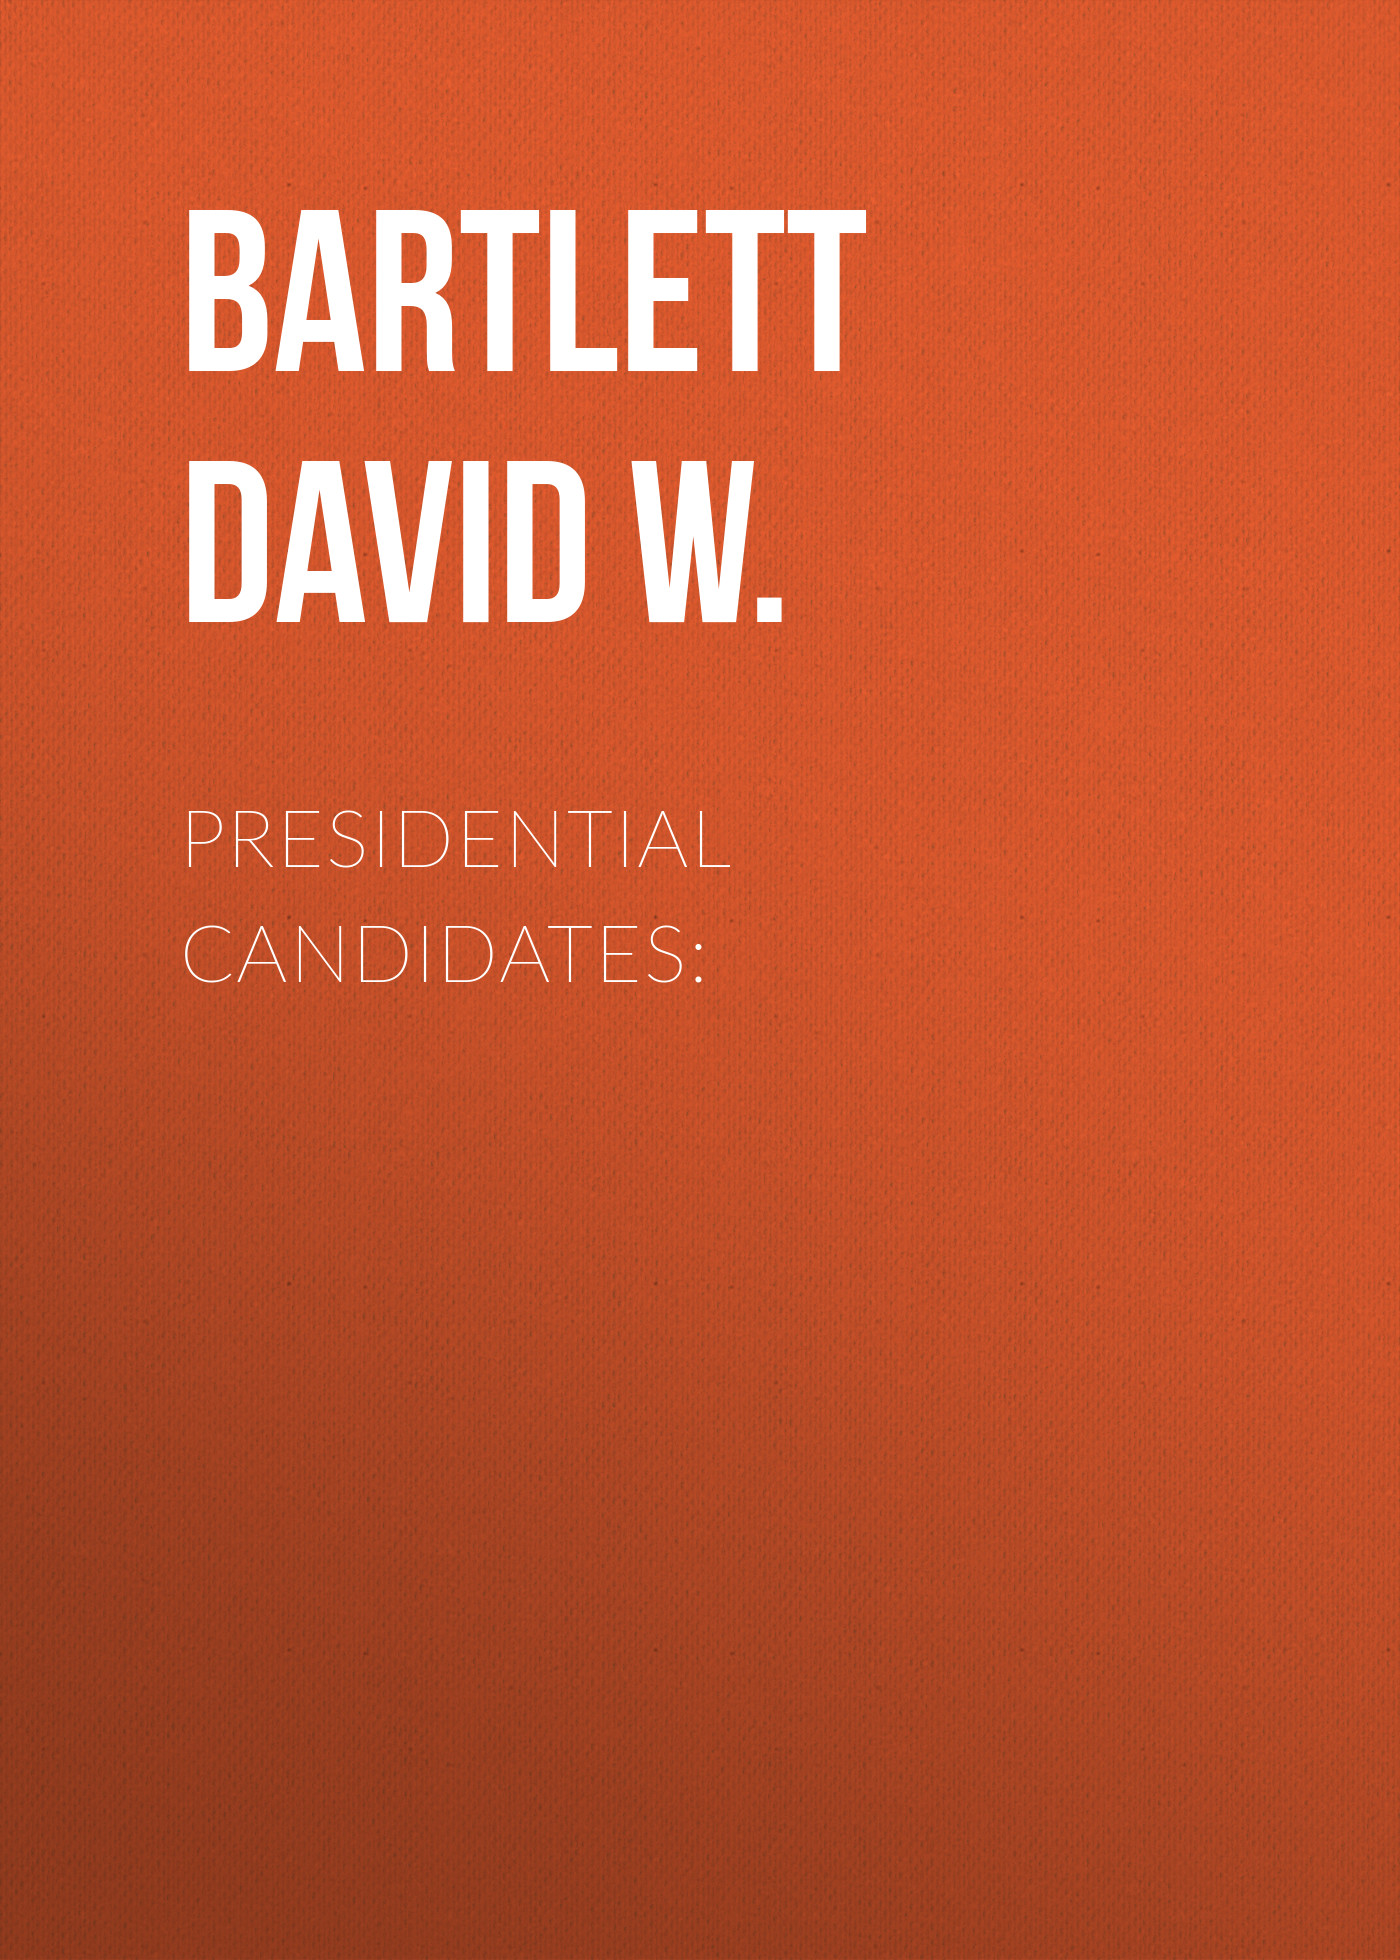 Bartlett David W. Presidential Candidates: